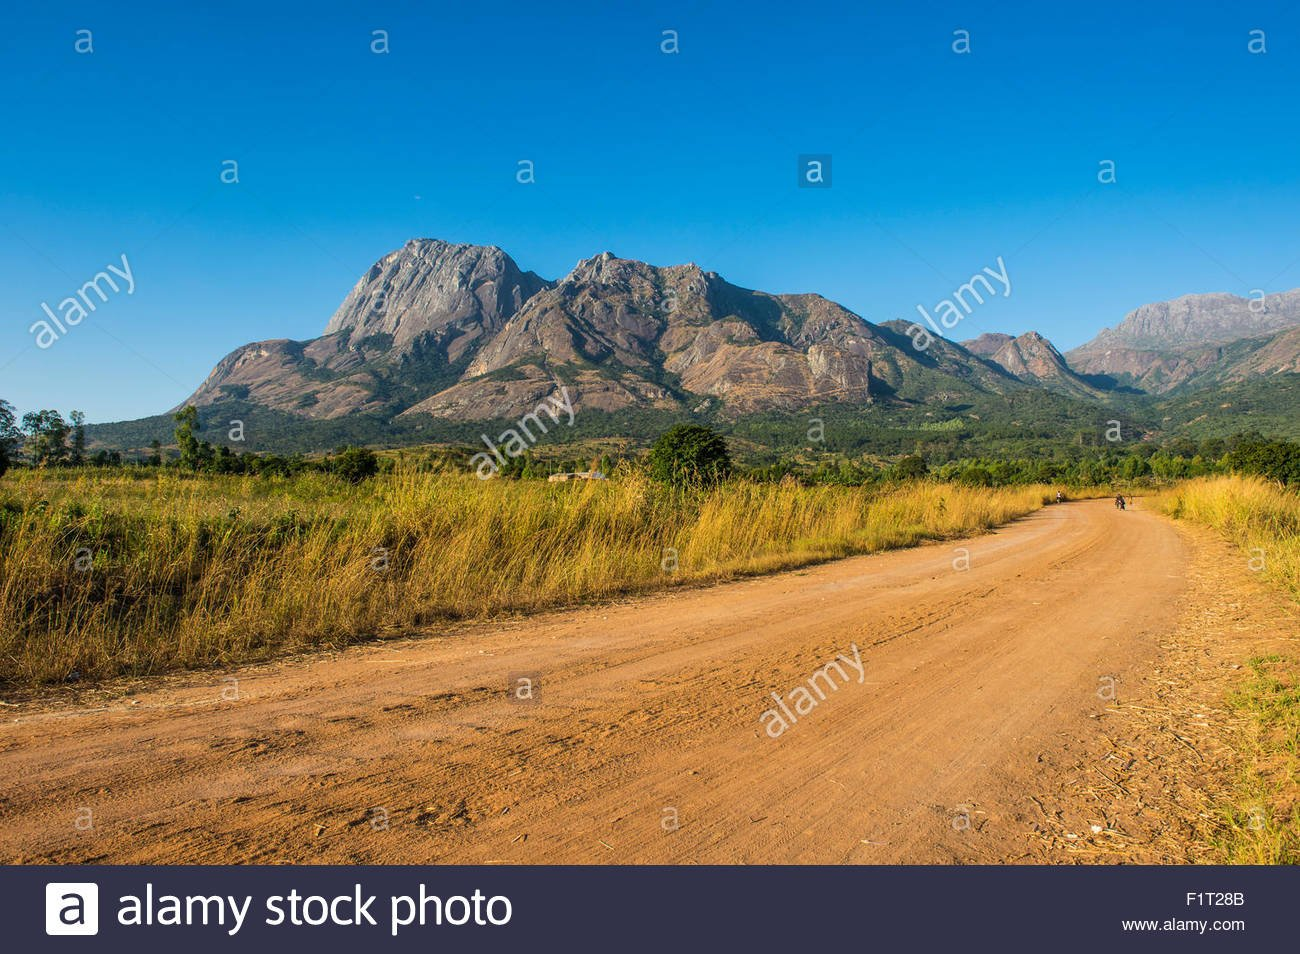 Mulanje Mountain Stock Photos Mulanje Mountain Stock Images   Alamy 1300x954